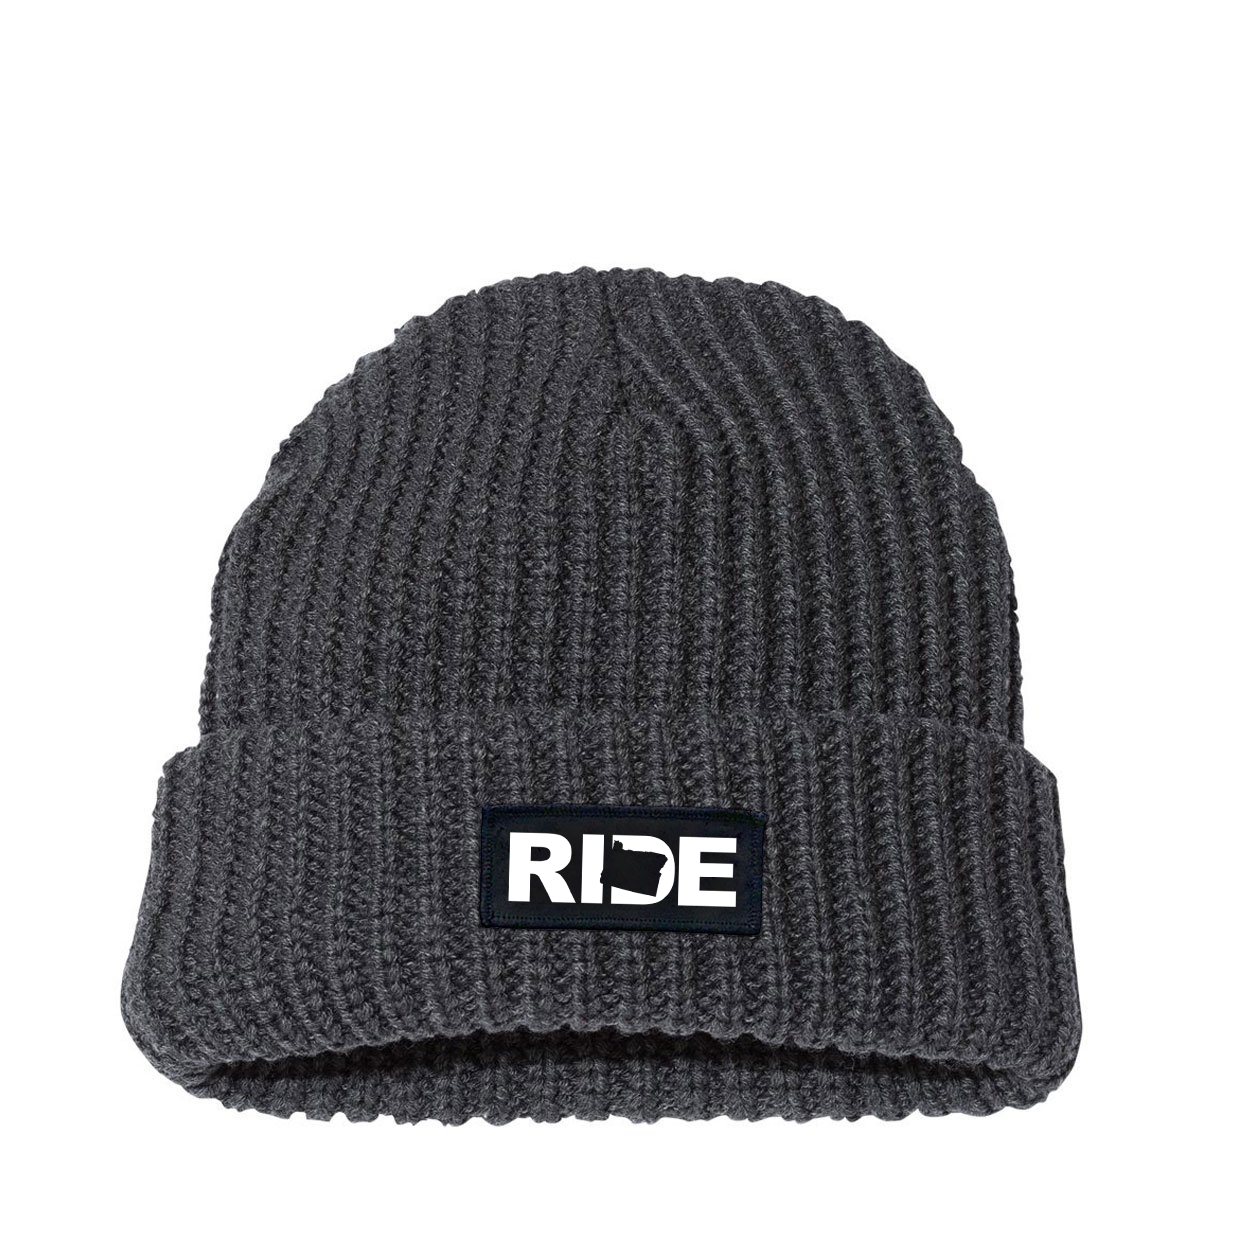 Ride Oregon Night Out Woven Patch Roll Up Jumbo Chunky Knit Beanie Charcoal (White Logo)